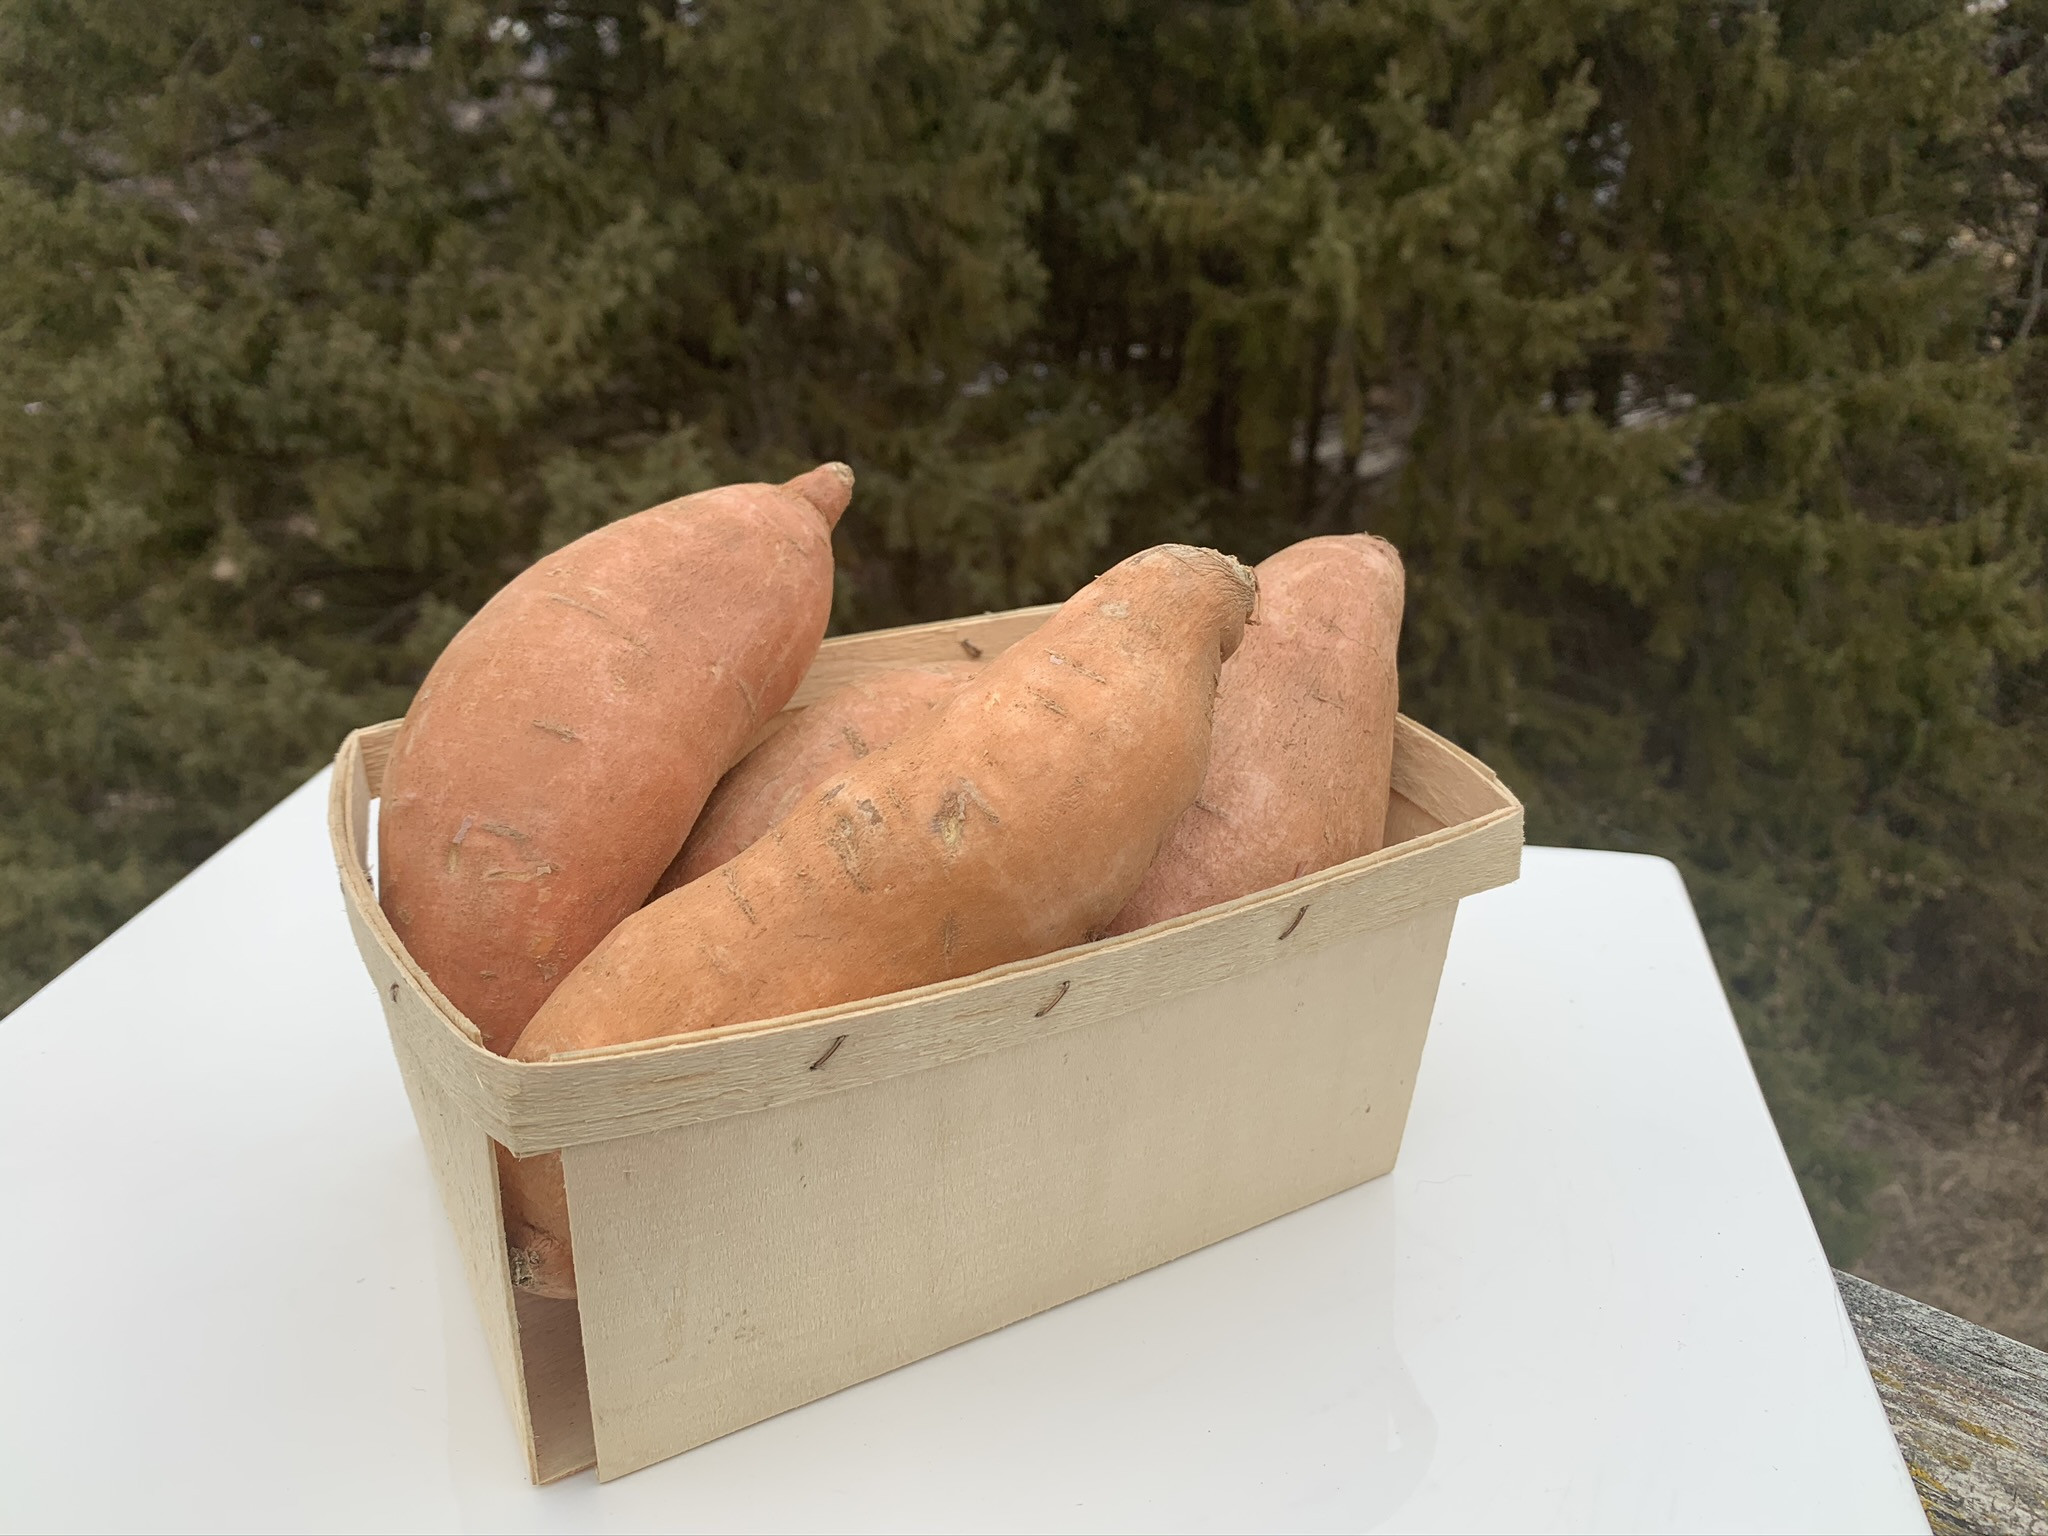 Beuragard Sweet Potato